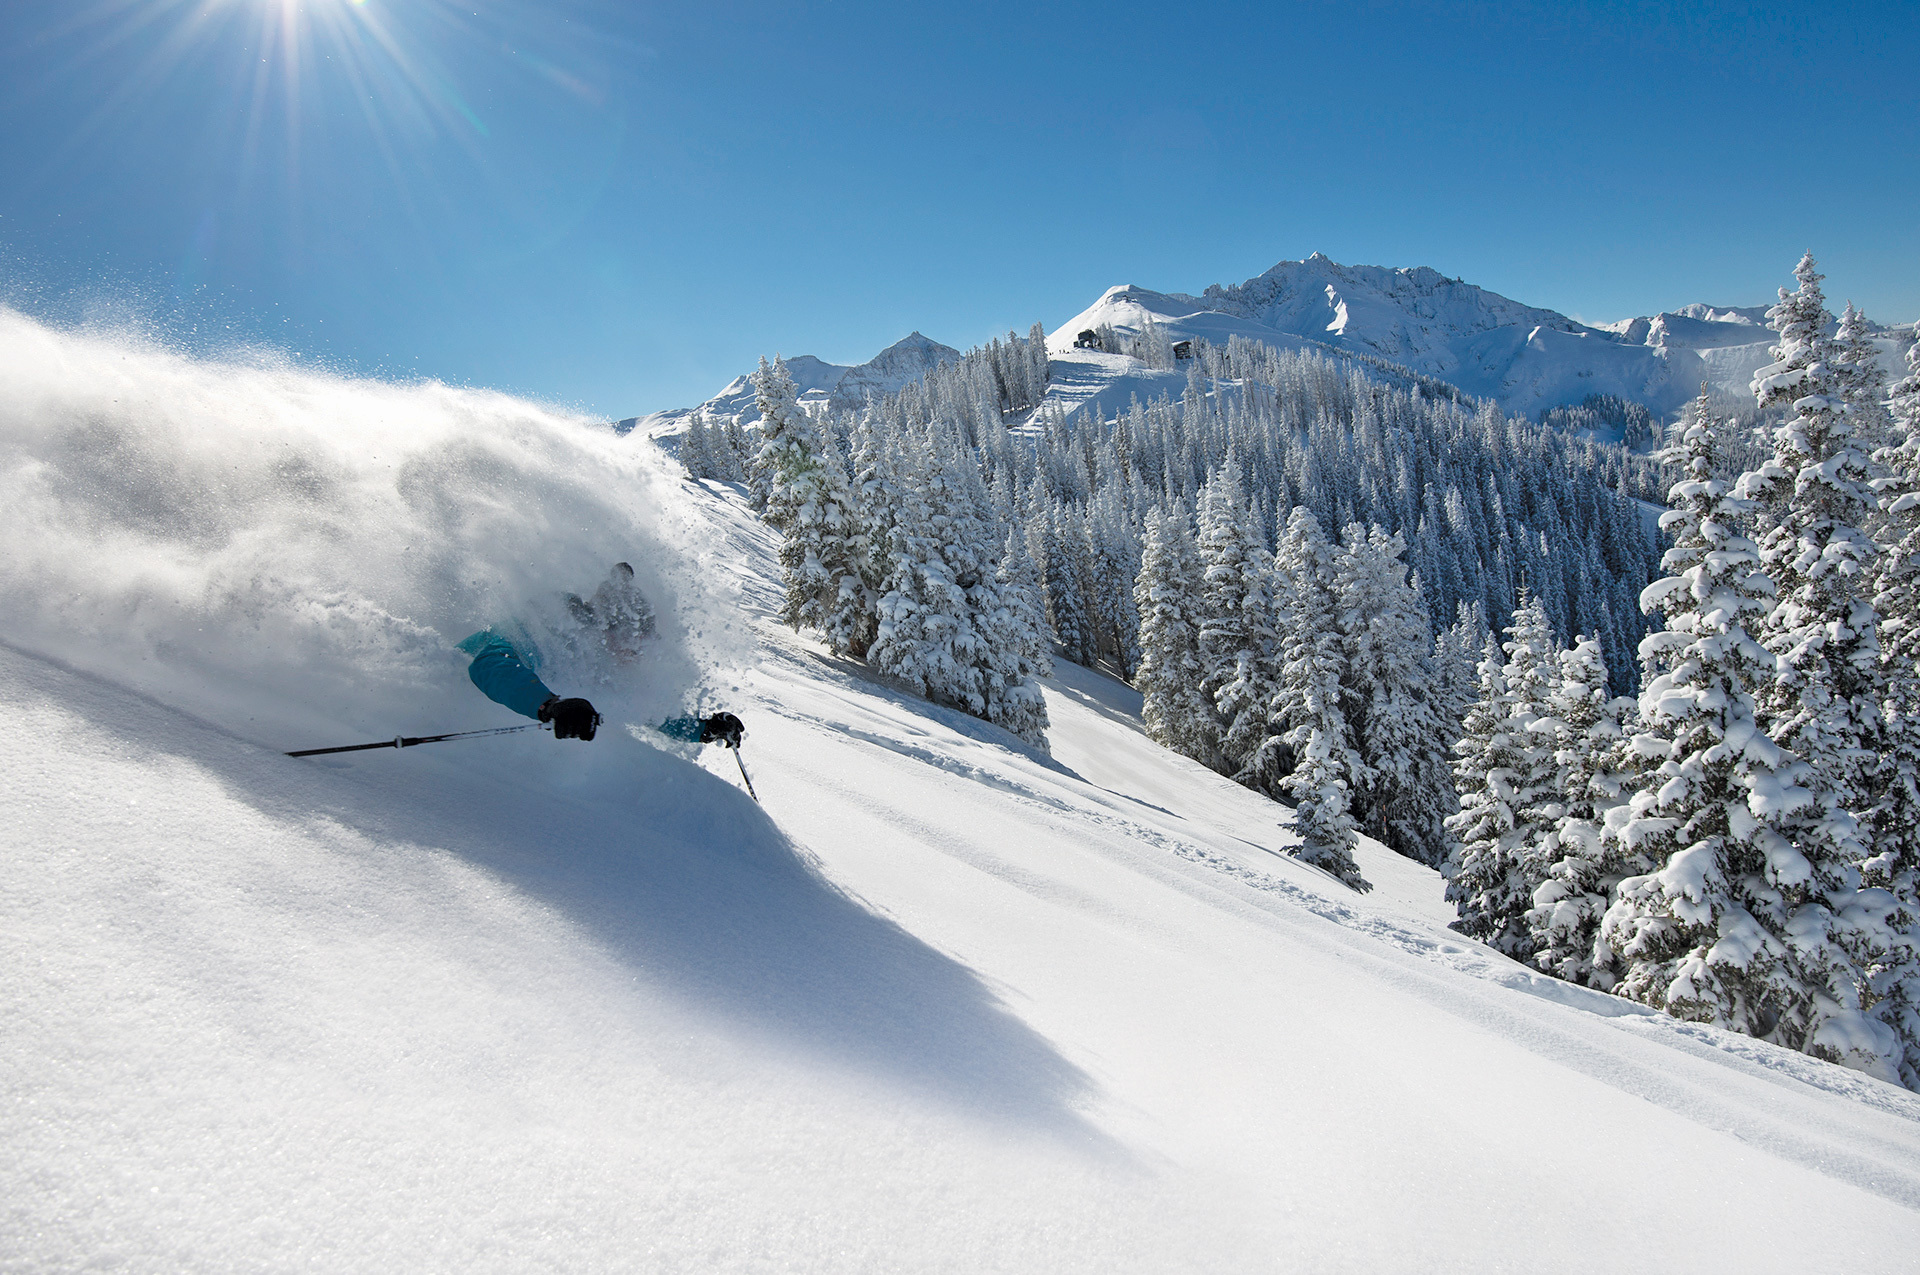 Skiing High Quality Wallpapers